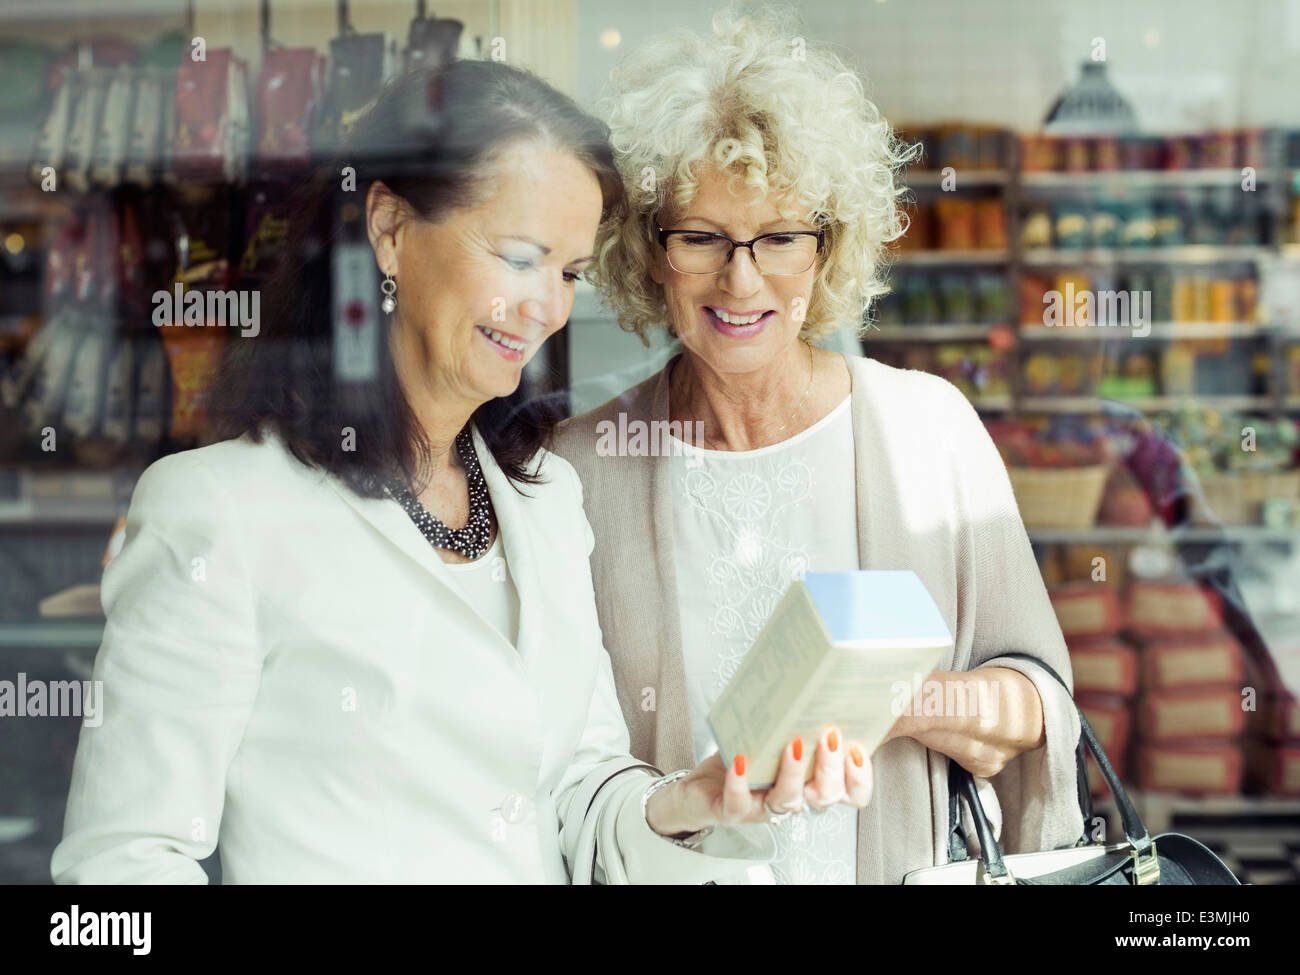 Senior women checking instructions on product in store - Stock Image